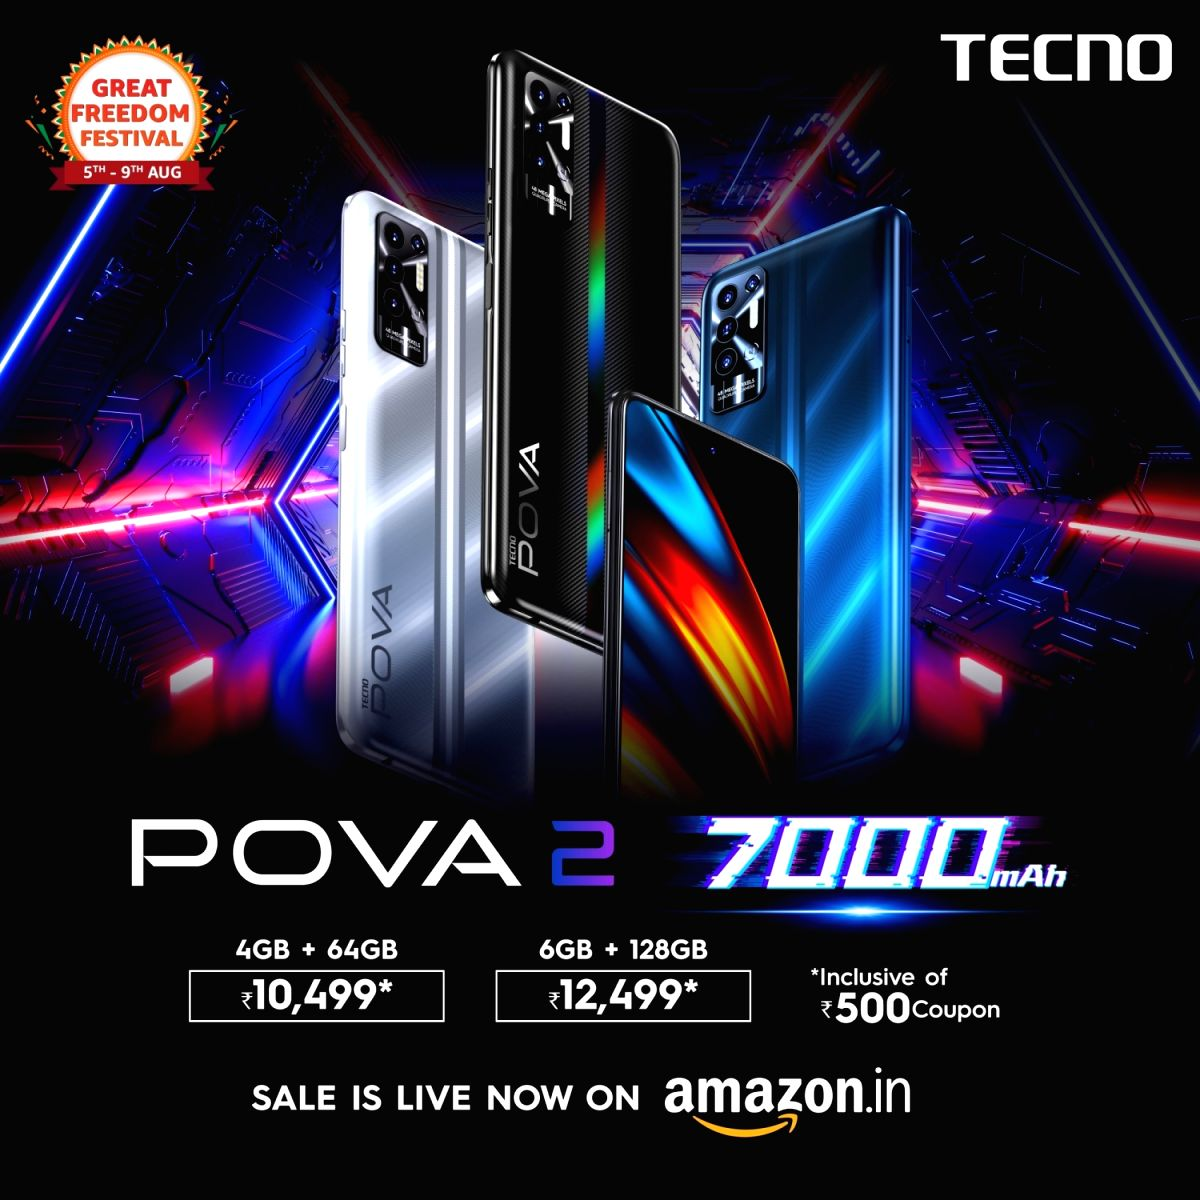 TECNO's POVA 2 first sale is now live on Amazon at INR 10499